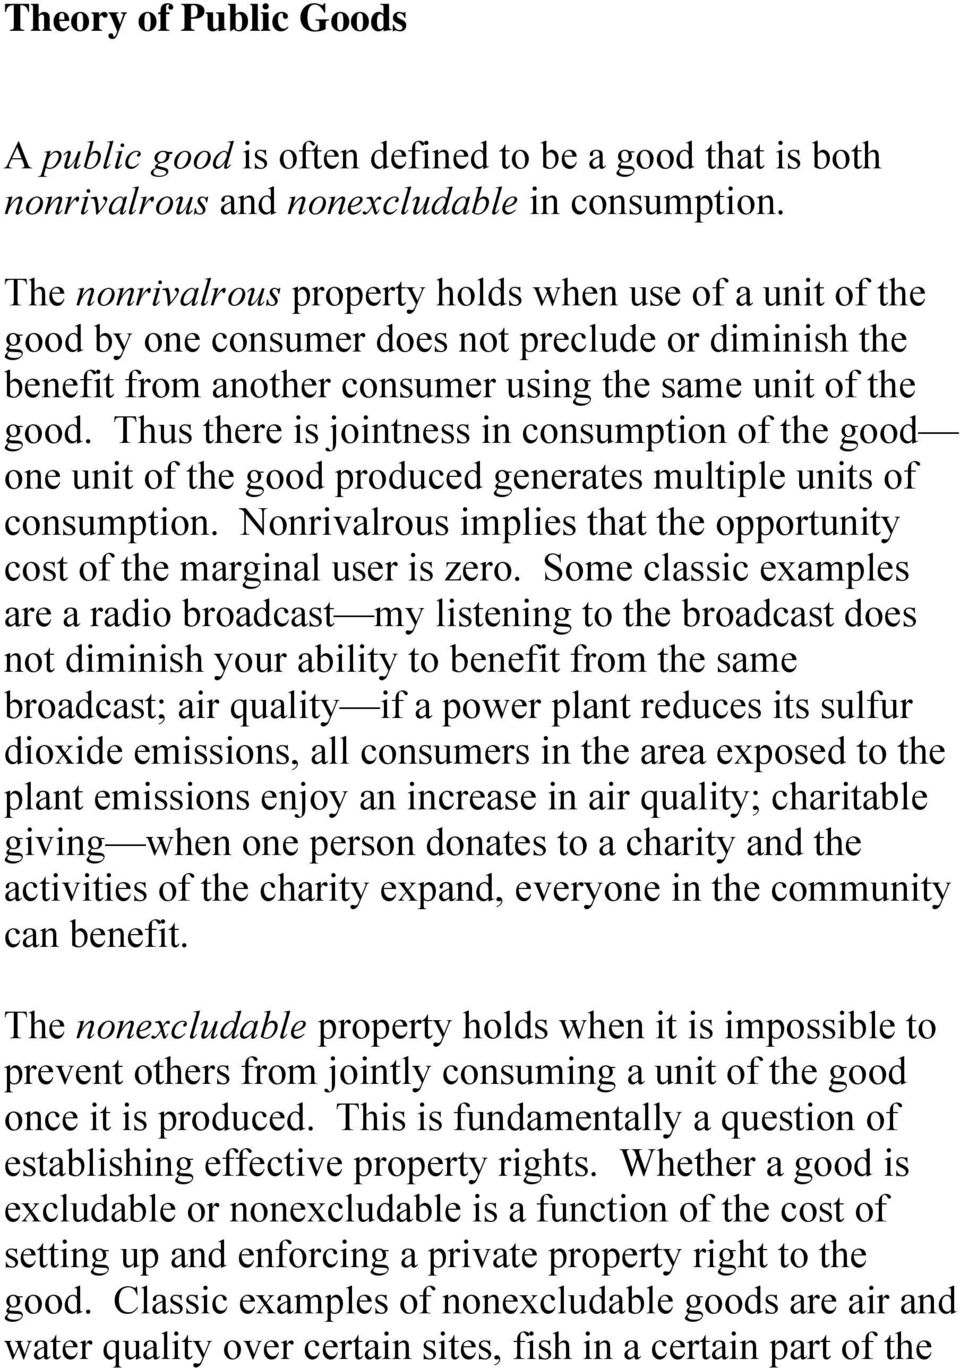 Thus there is jointness in consumption of the good one unit of the good produced generates multiple units of consumption. Nonrivalrous implies that the opportunity cost of the marginal user is zero.